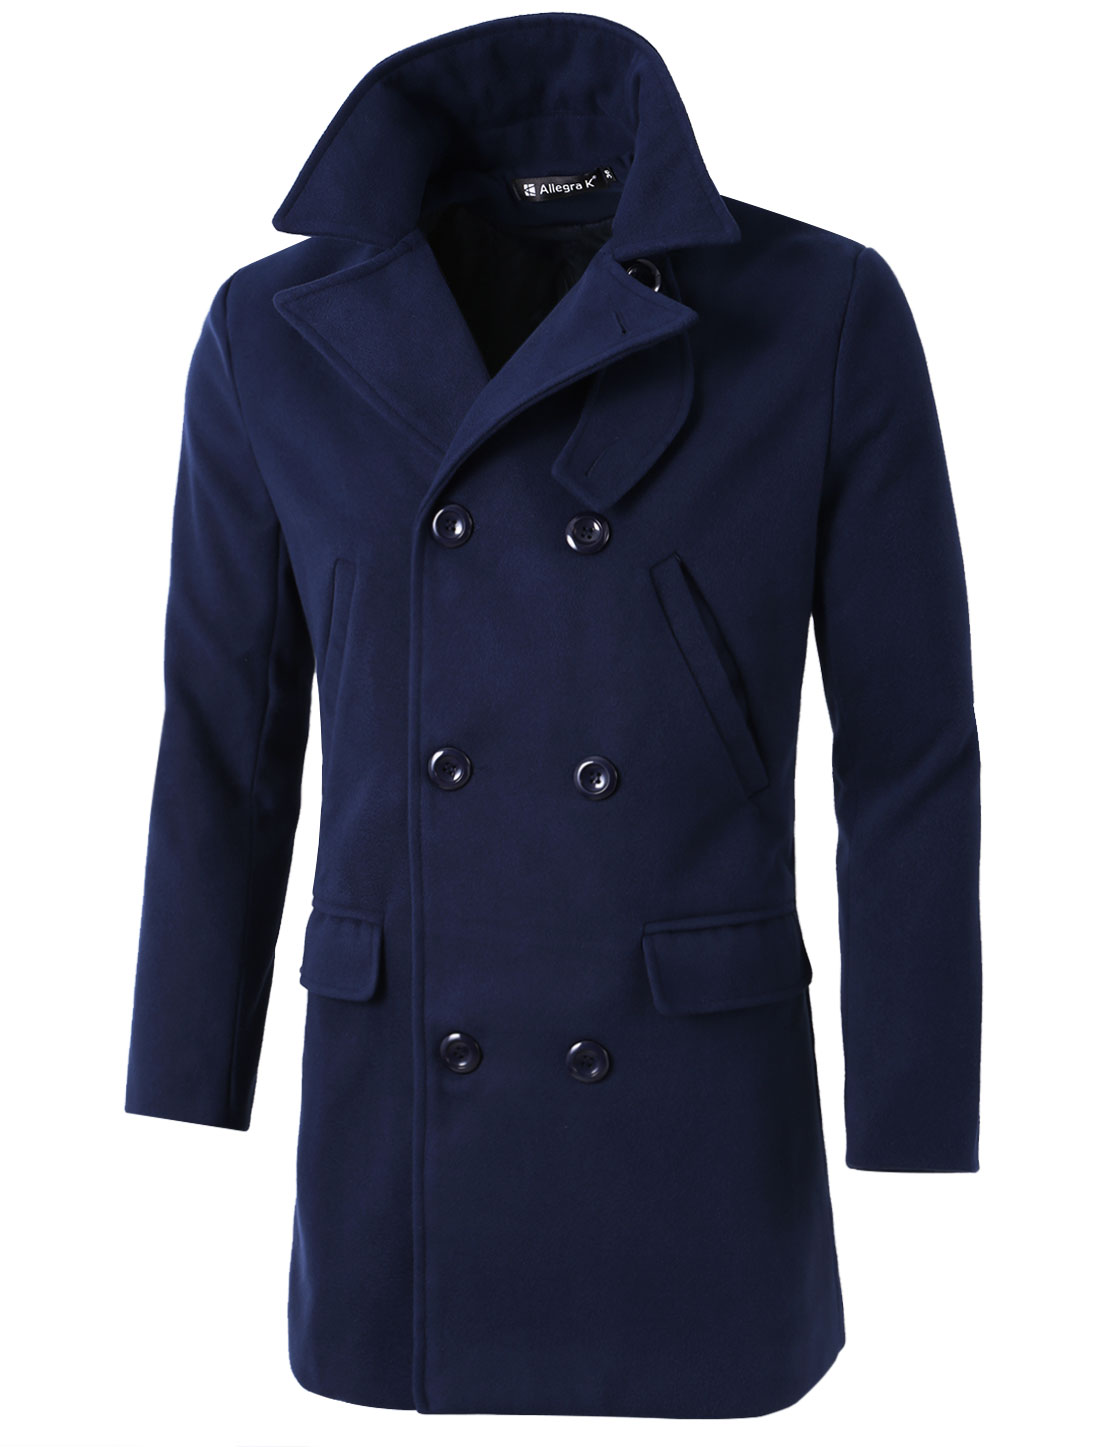 Men Notched Lapel Double Breasted Full Lining Worsted Coat Blue L